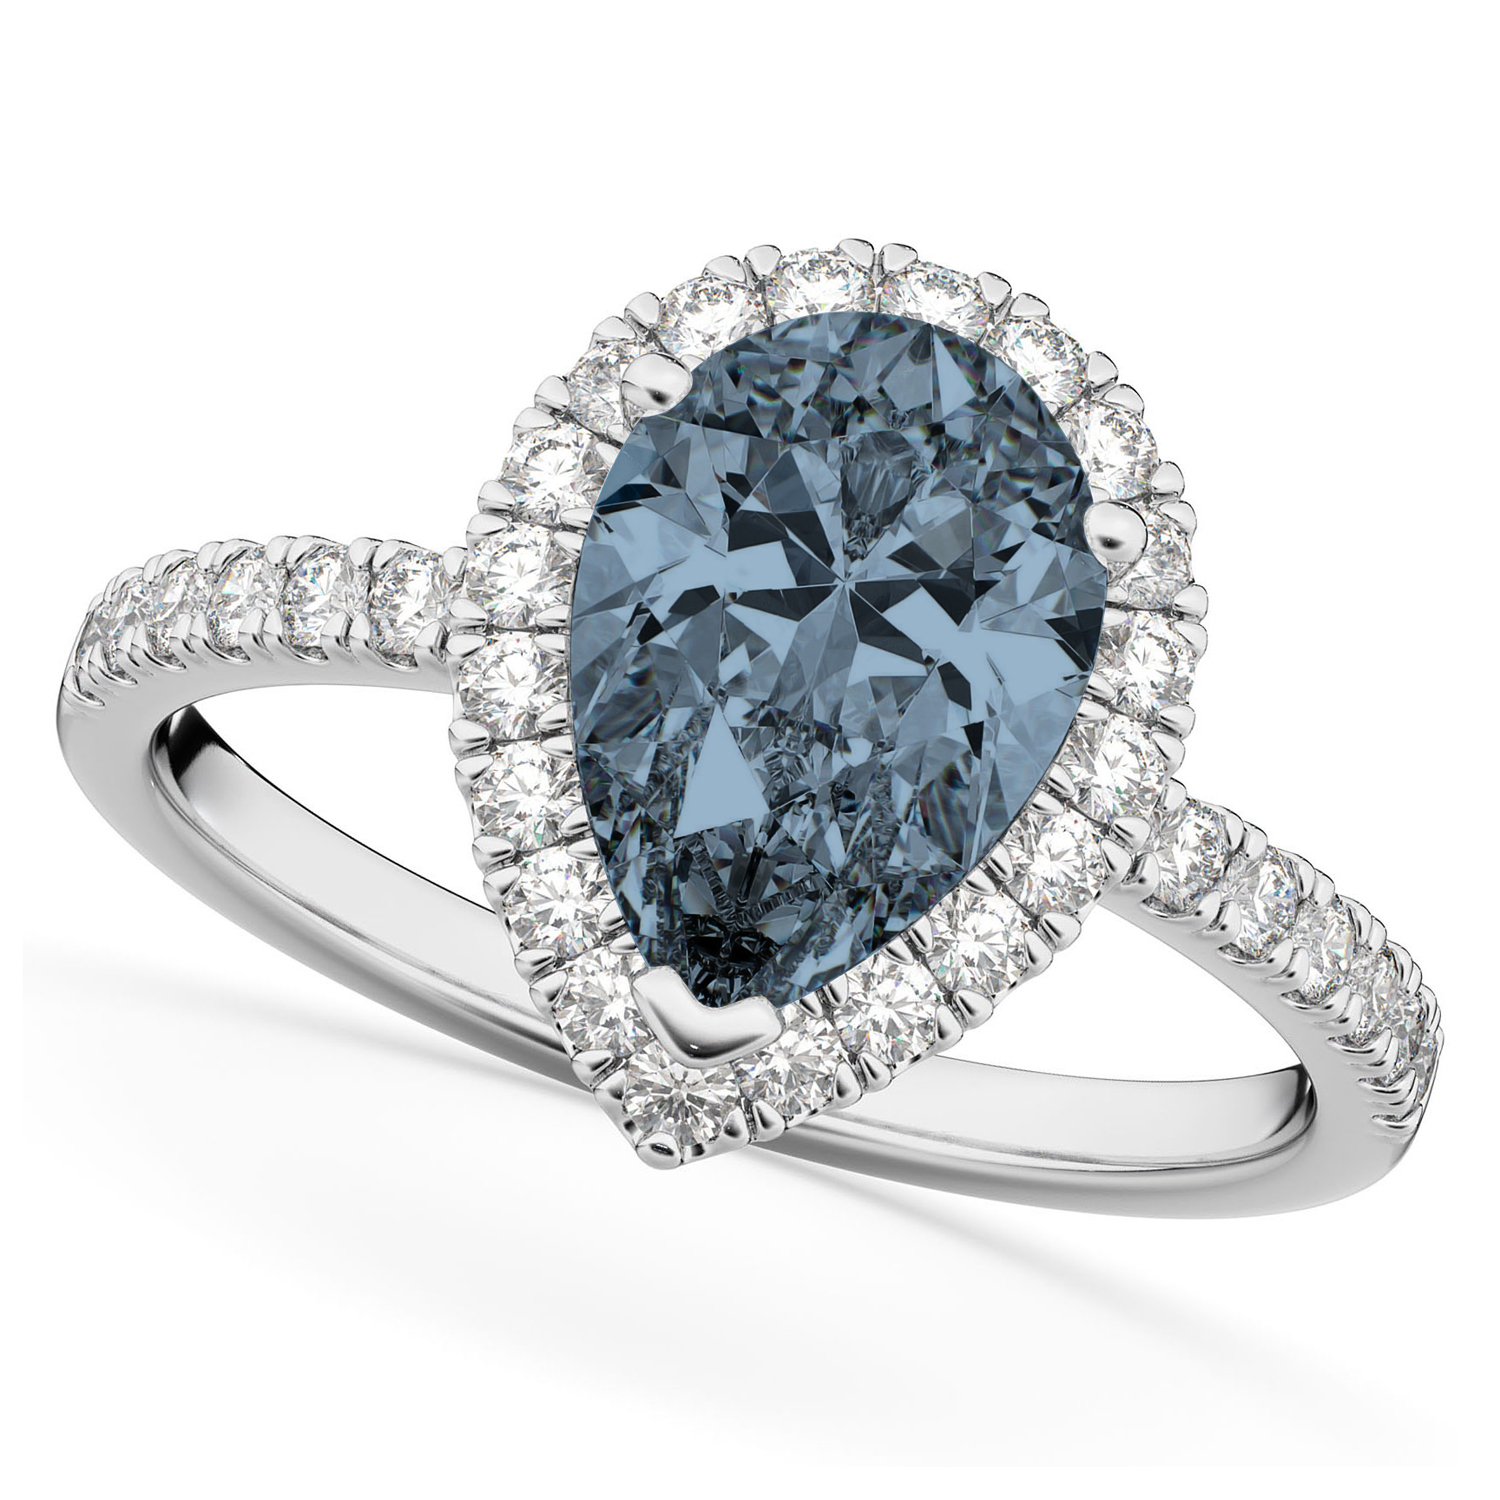 Pear Cut Halo Gray Spinel & Diamond Engagement Ring 14K White Gold 2.21ct